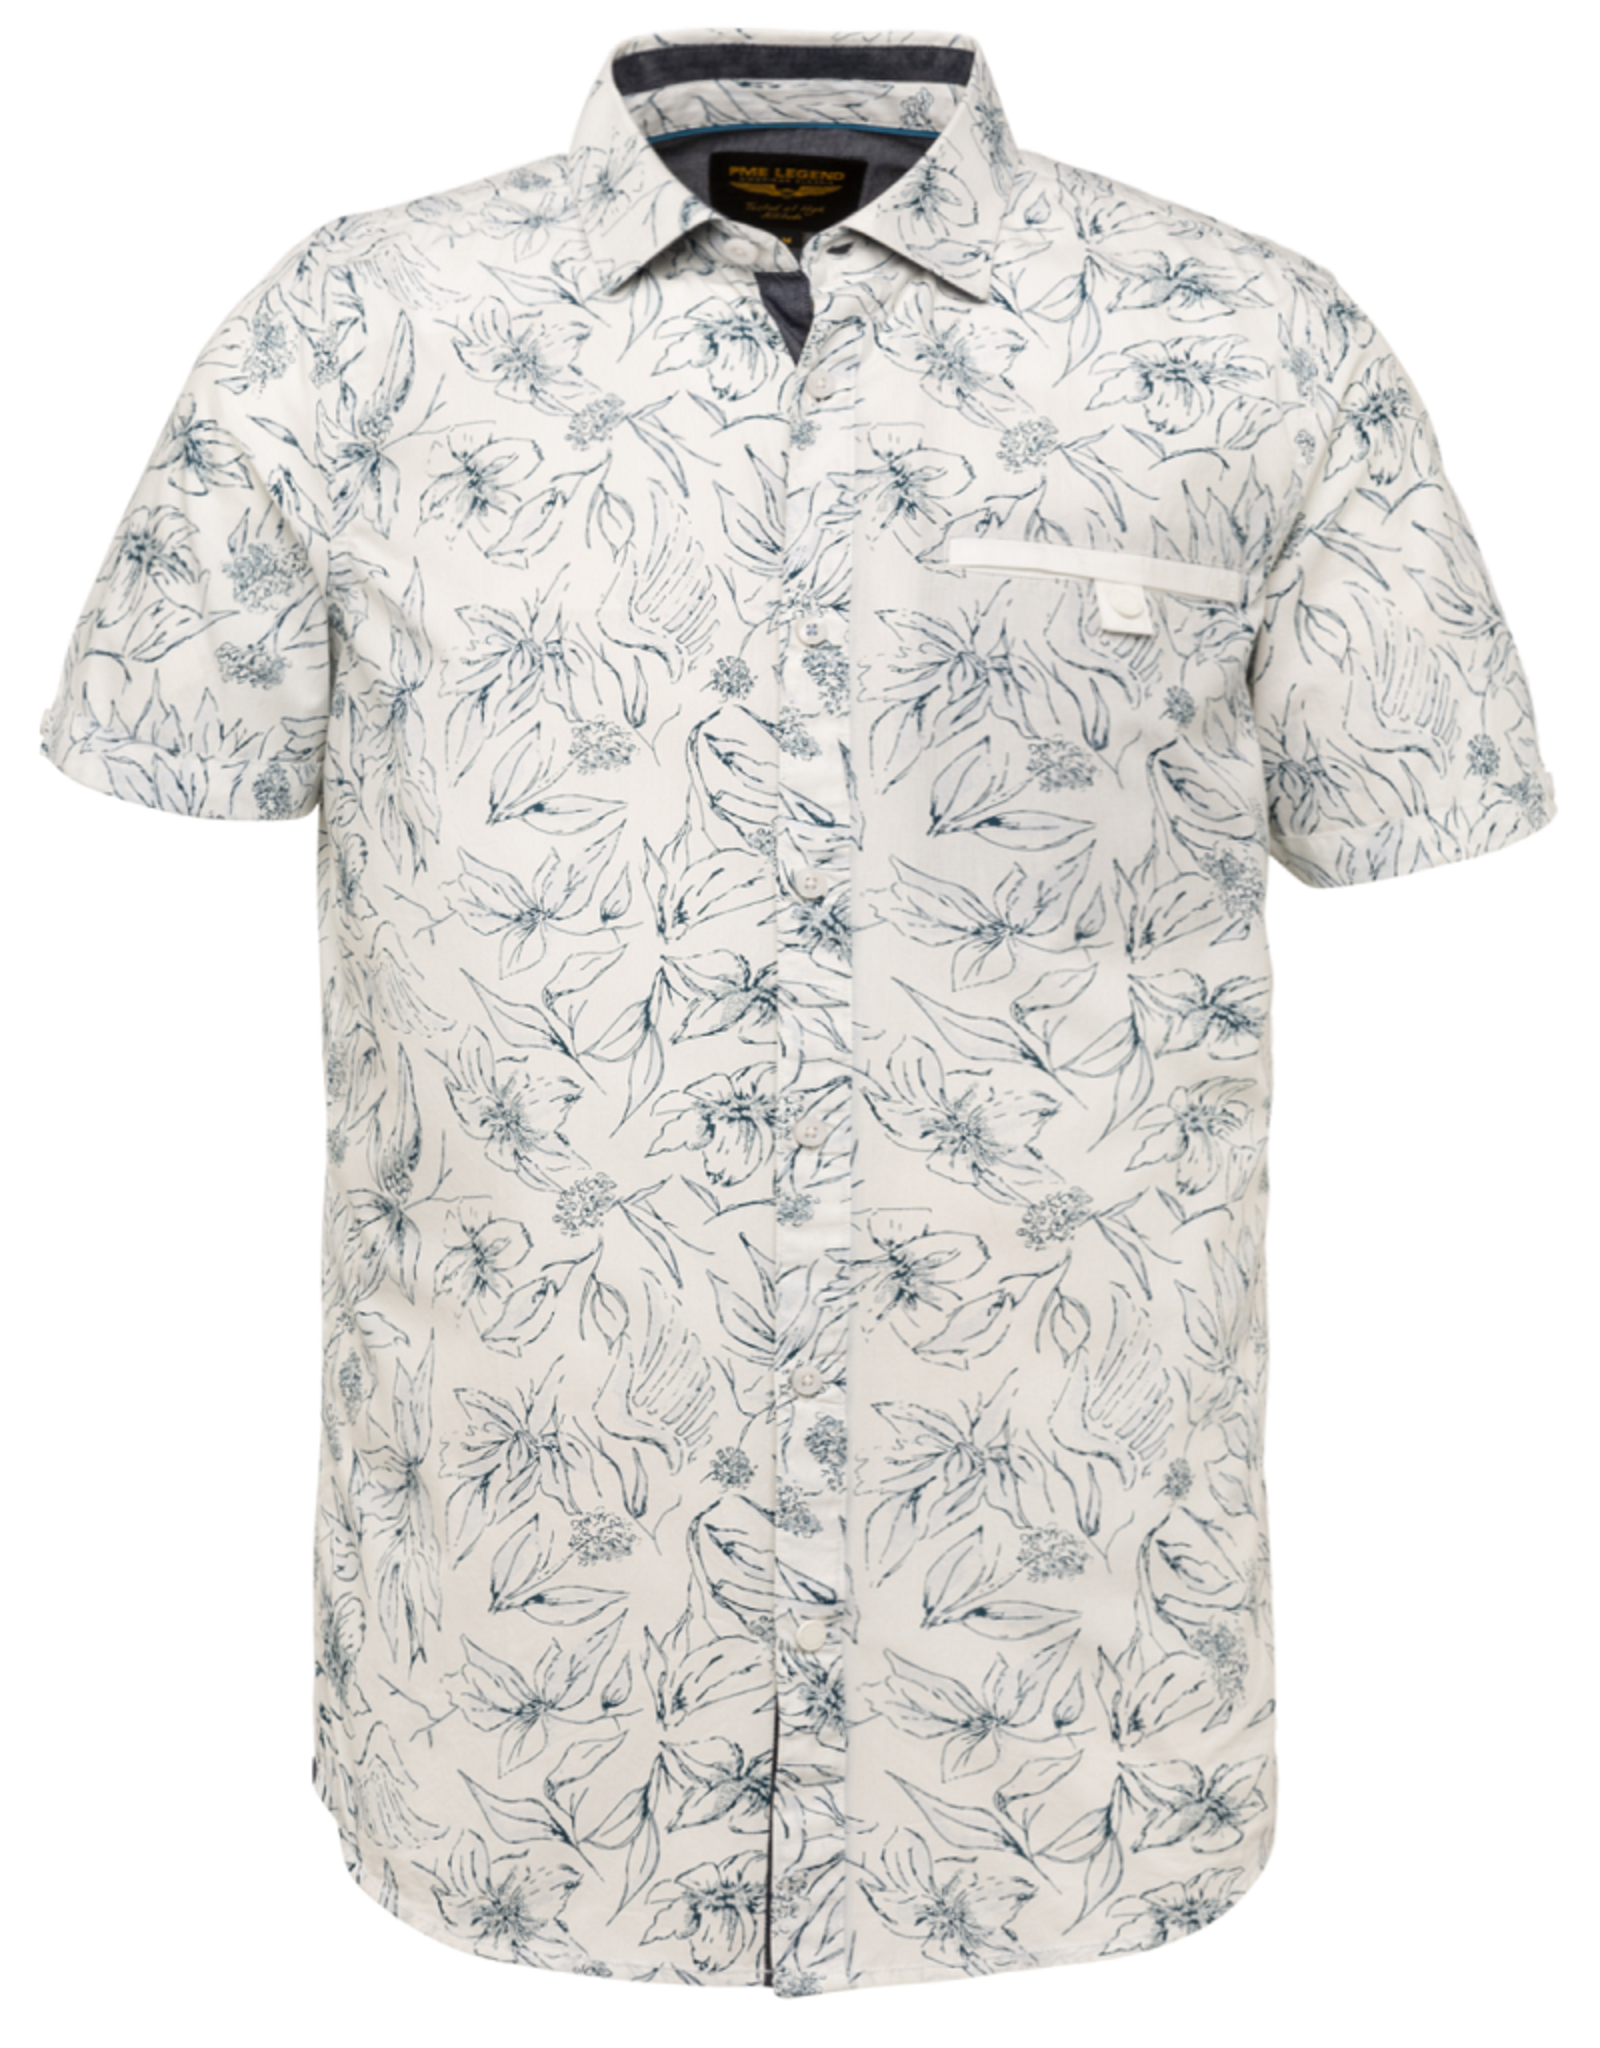 PME Legend PME Legend SLeeve Shirt Poplin print Bright white 7003